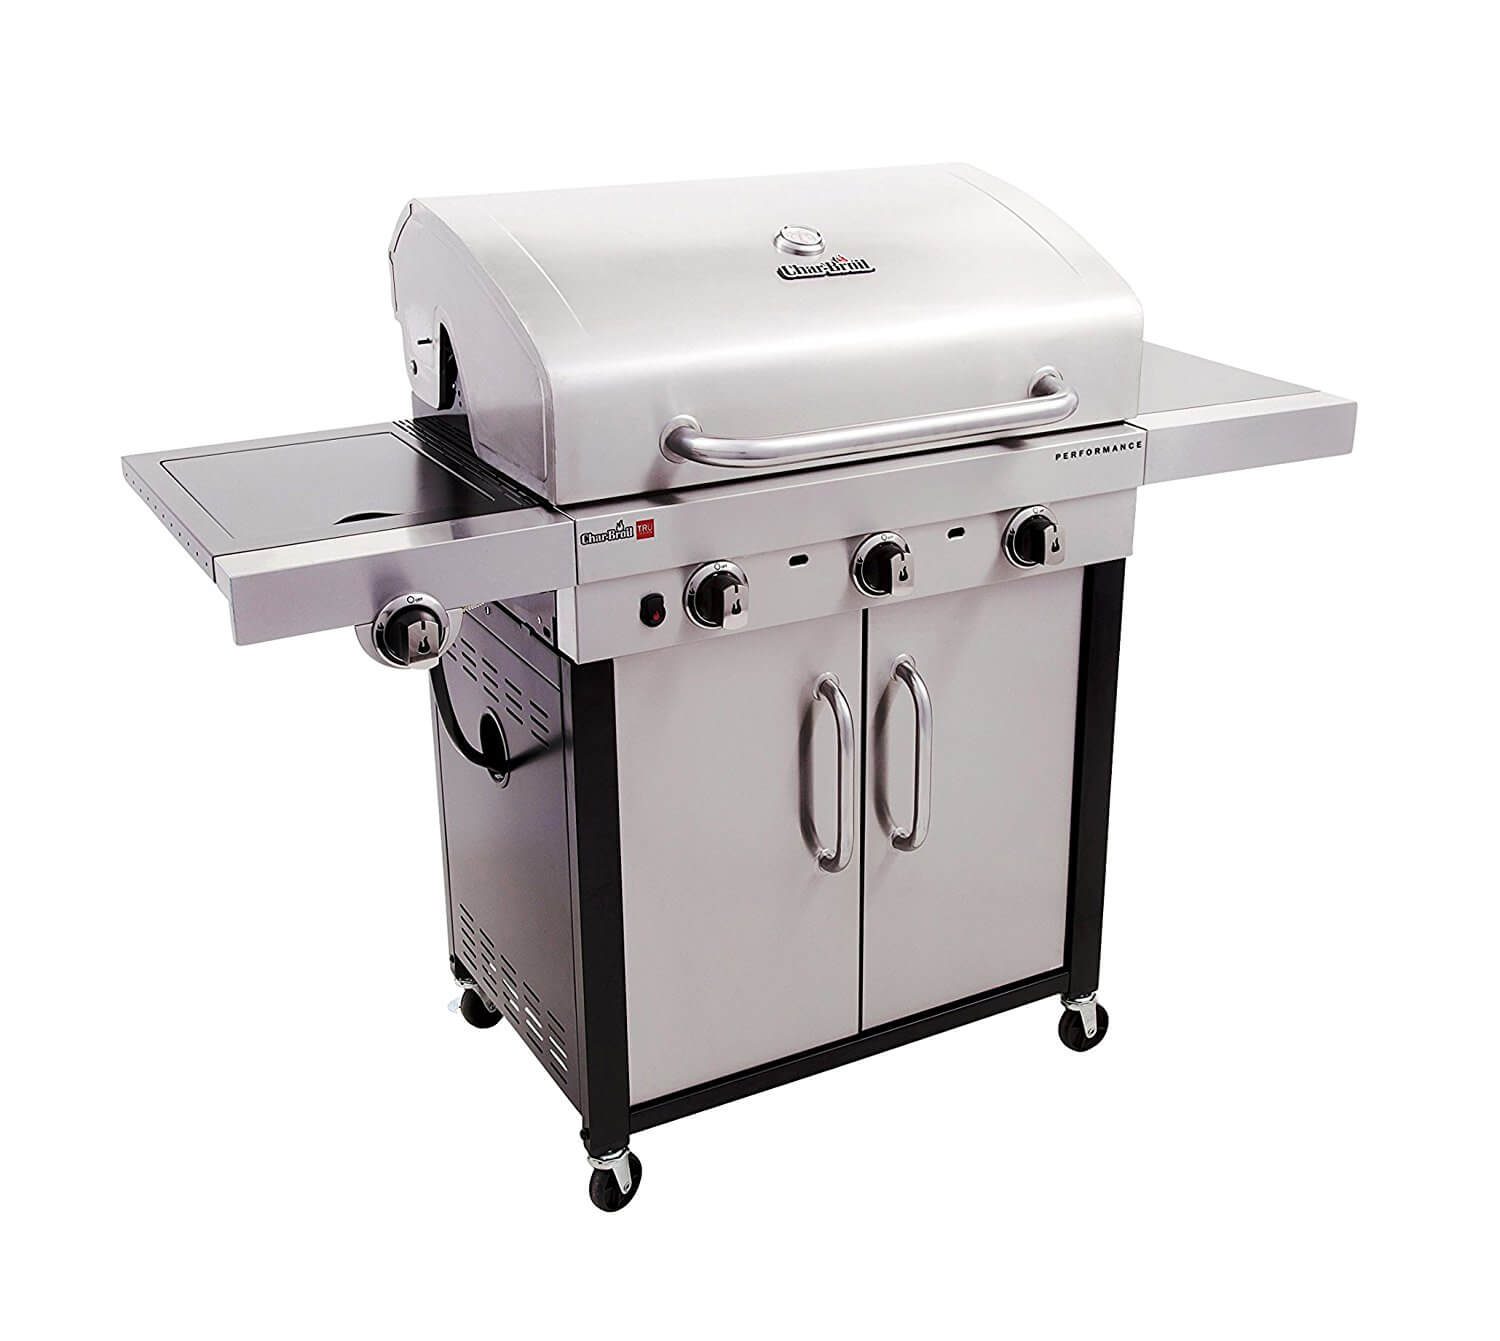 Outdoor Gas Grills ~ The best outdoor gas grills you can buy top grill